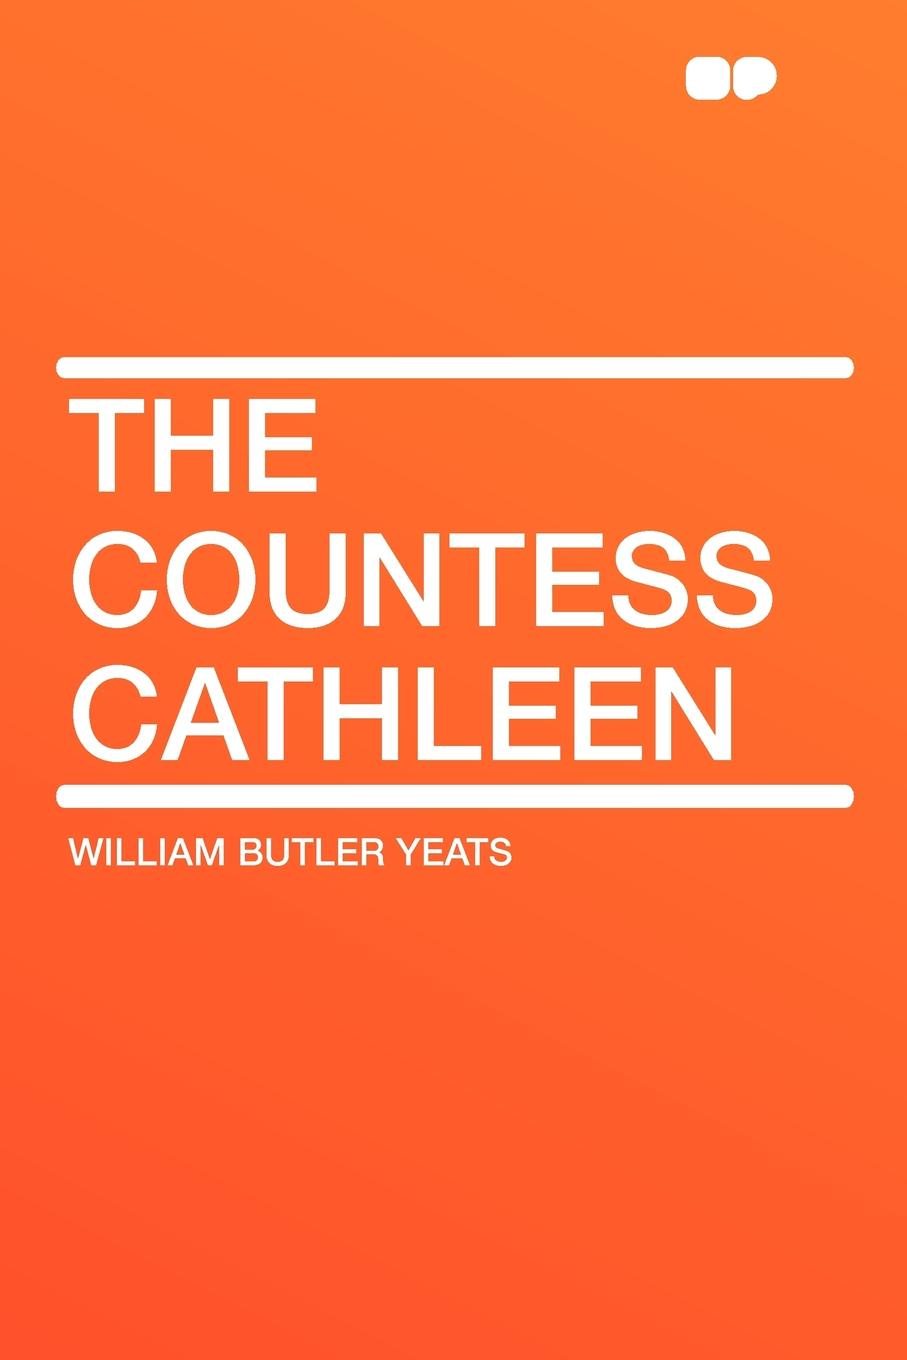 William Butler Yeats The Countess Cathleen